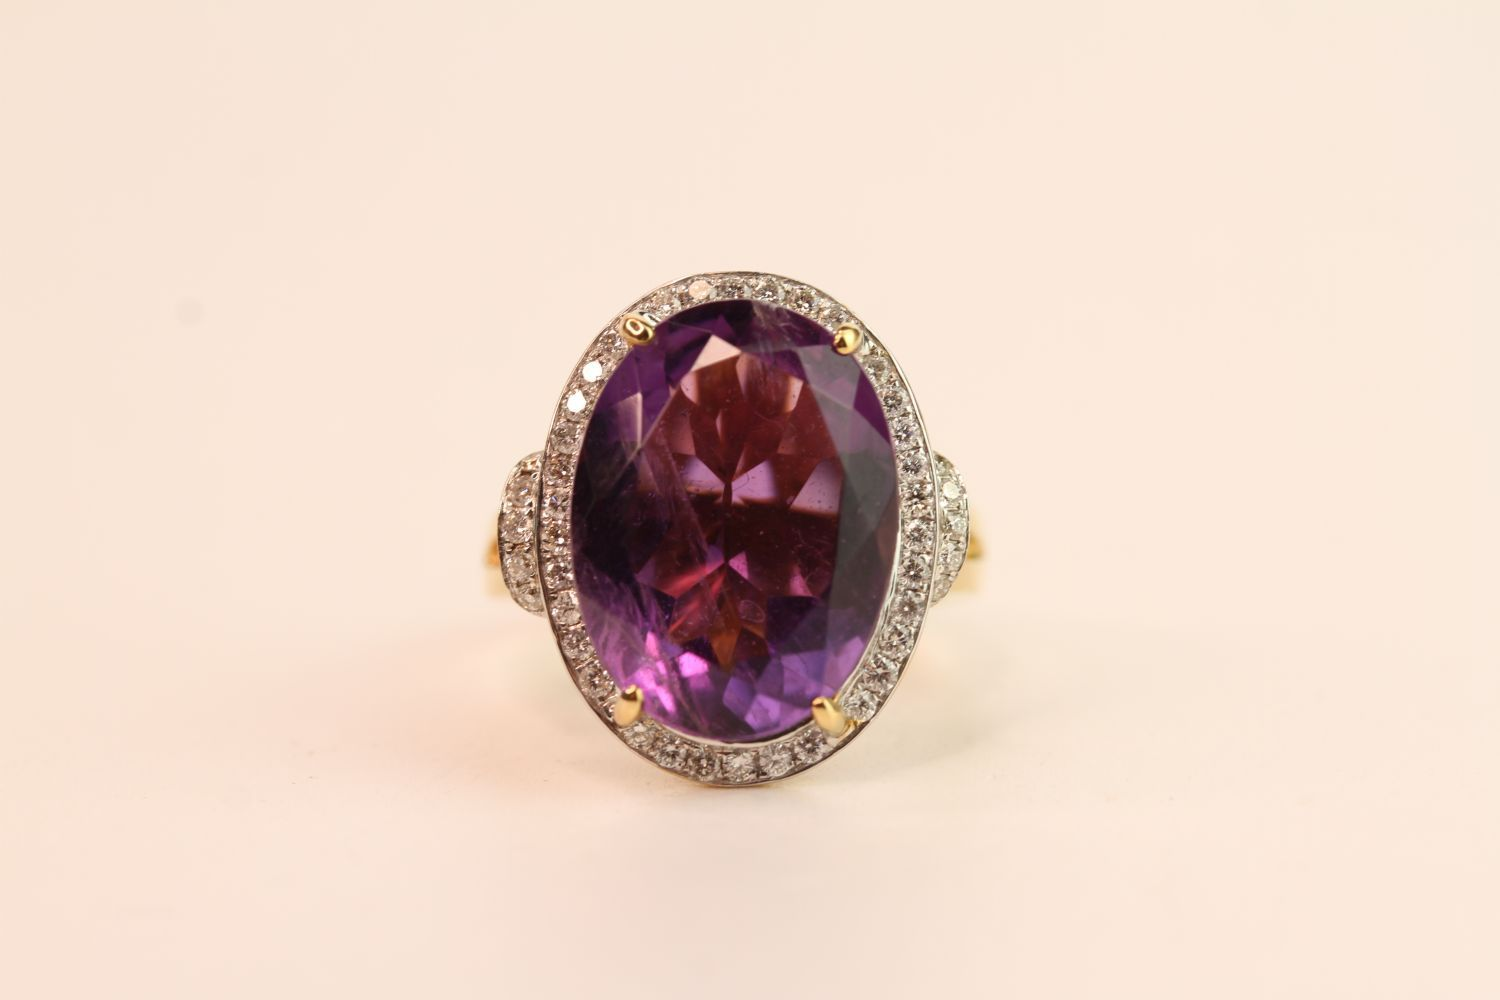 Amethyst & Diamond Cluster Ring, set with an oval cut amethyst, surrounded by round brilliant